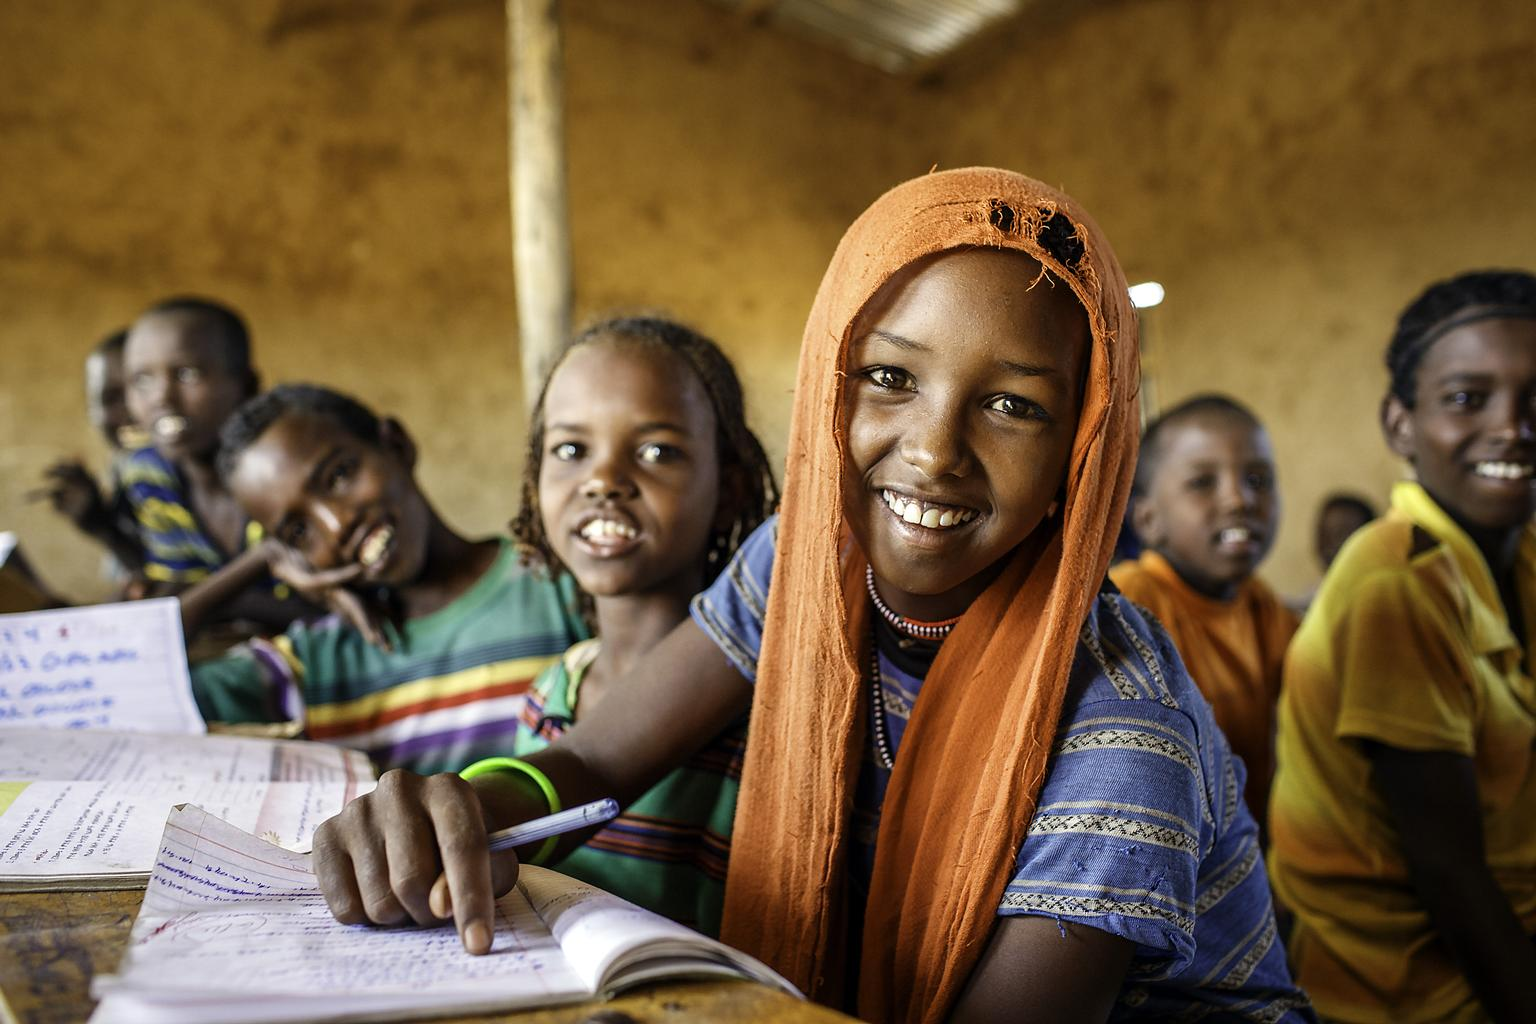 Esa Ali Mohammad, 11, 4th grader at a primary school,  studies with her classmates in Afar region of Ethiopia